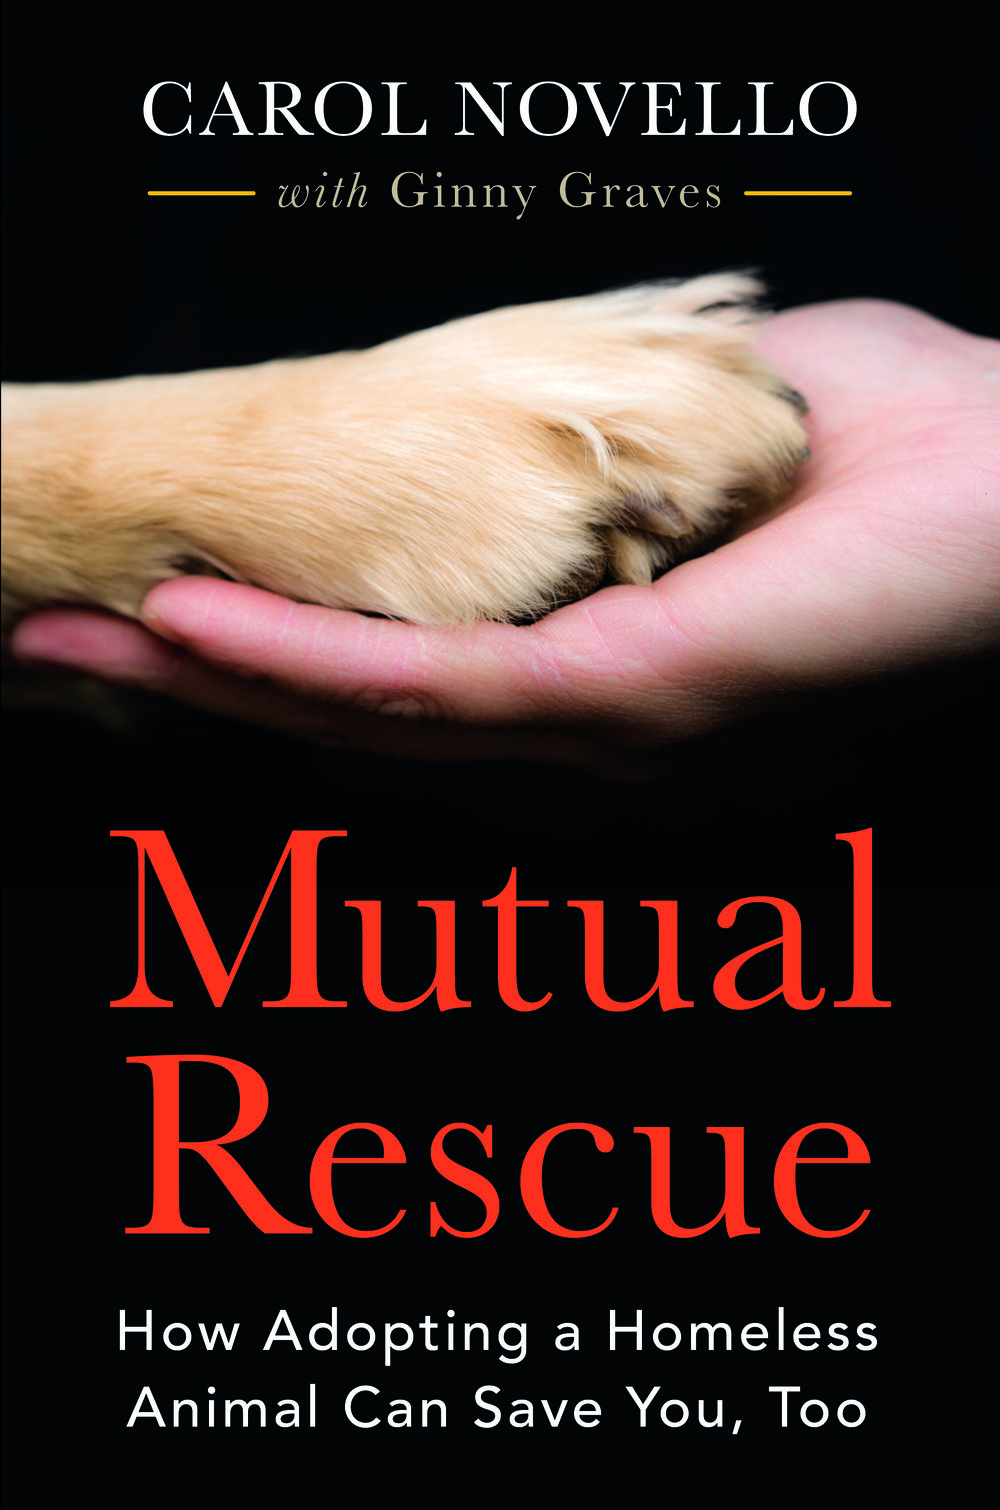 Novello MUTUTAL RESCUE cover.jpg